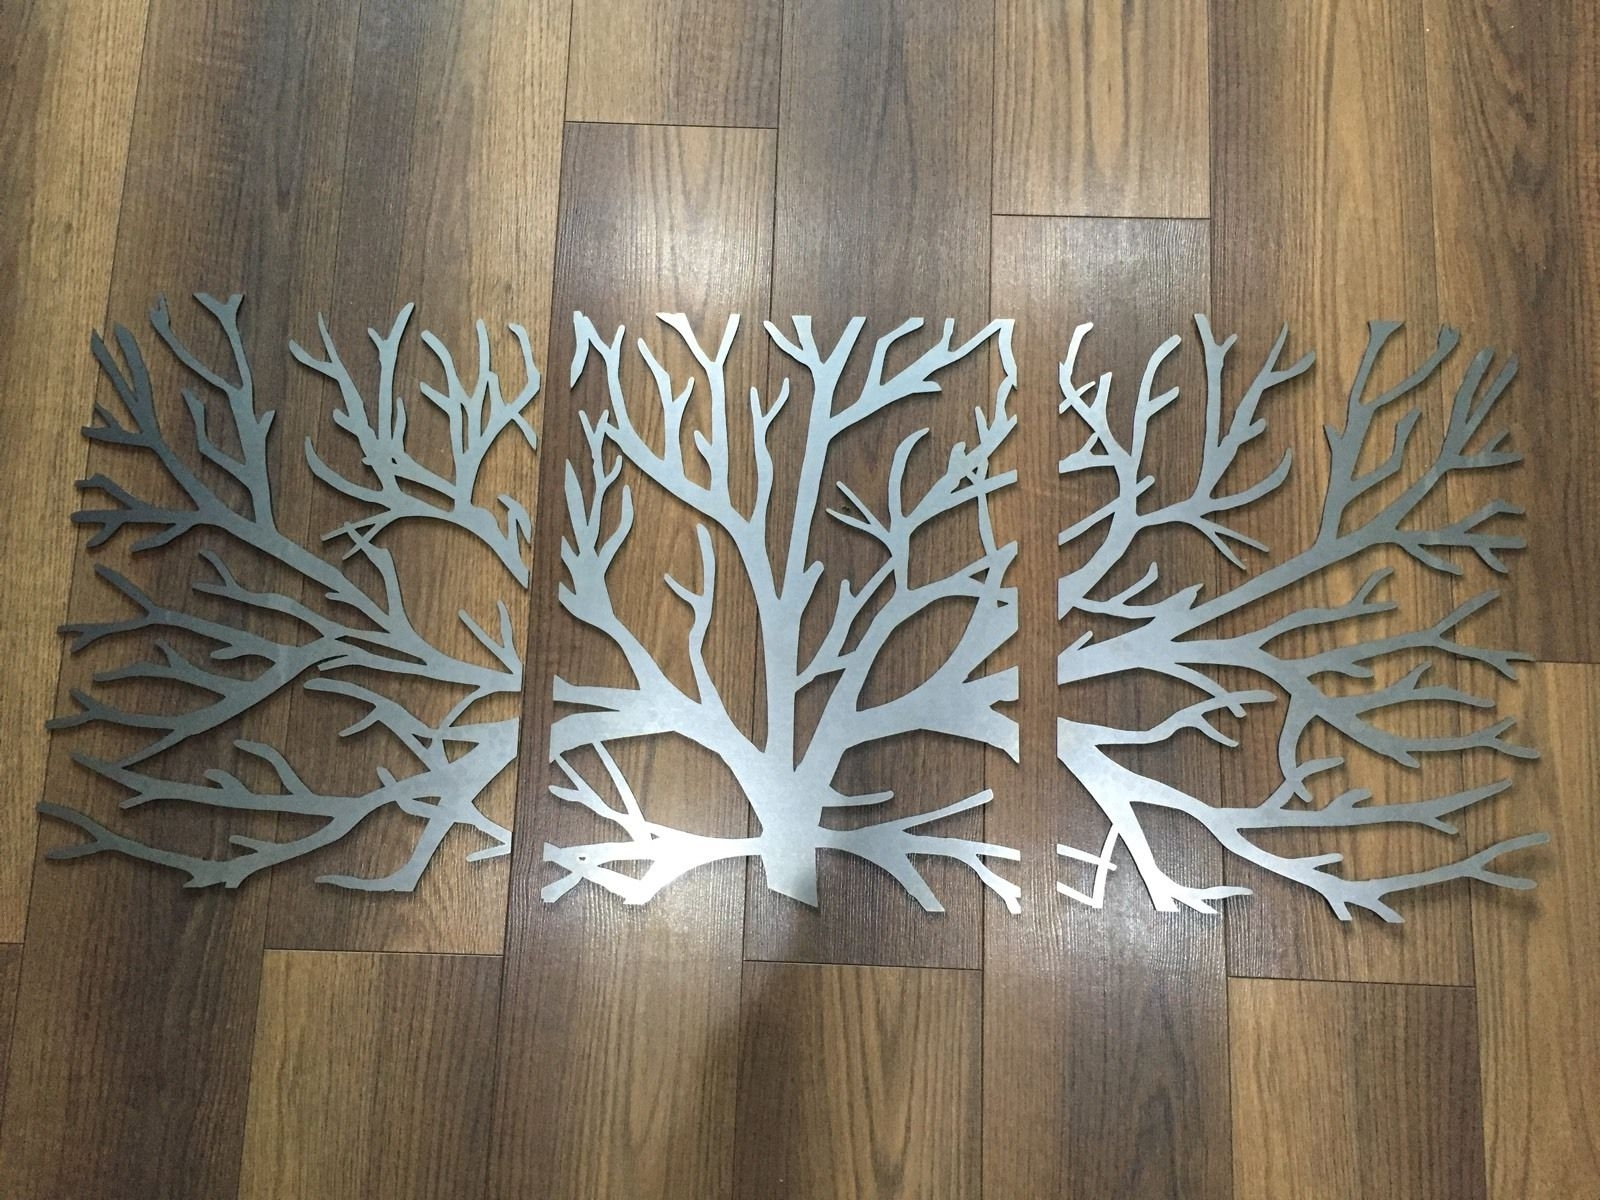 Wall Art Designs: Metal Wall Art Decor And Sculptures Wooden Metal With Regard To Fashionable 3D Tree Wall Art (View 14 of 15)